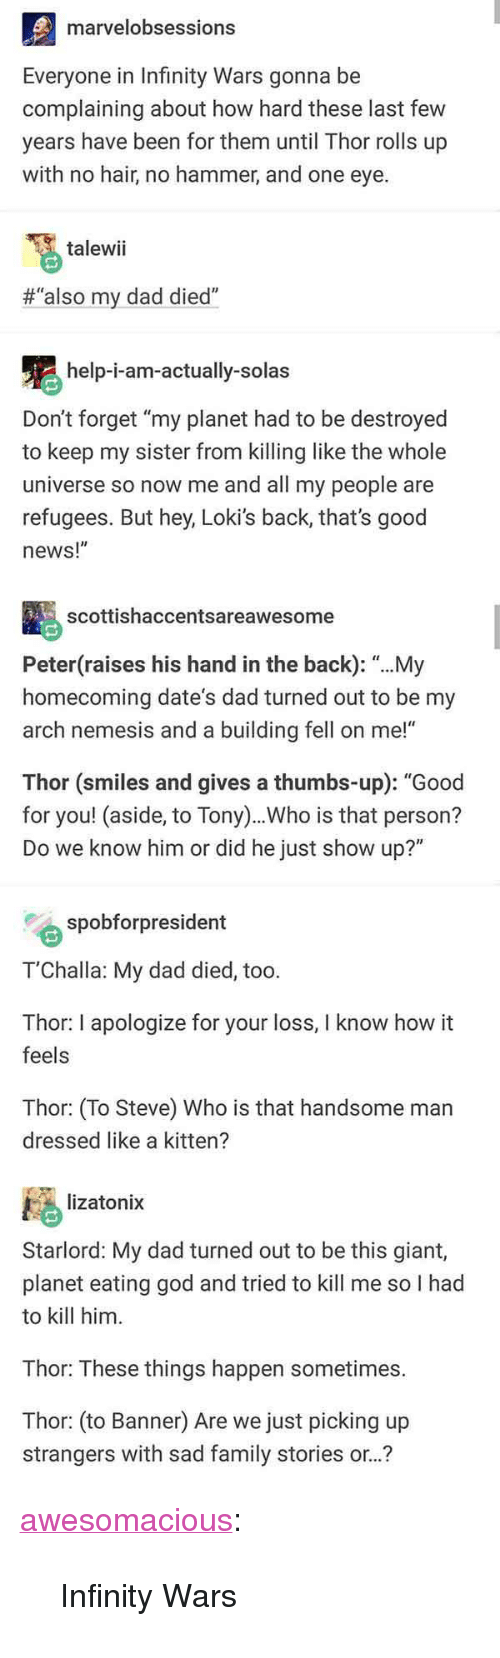 """Dad, Family, and God: marvelobsessions  Everyone in Infinity Wars gonna be  complaining about how hard these last few  years have been for them until Thor rolls up  with no hair, no hammer, and one eye.  talewii  #""""also my dad died""""  help-i-am-actually-solas  Don't forget """"my planet had to be destroyed  to keep my sister from killing like the whole  universe so now me and all my people are  refugees. But hey, Loki's back, that's good  news!""""  scottishaccentsareawesome  Peter(raises his hand in the back): """"...My  homecoming date's dad turned out to be my  arch nemesis and a building fell on me!""""  Thor (smiles and gives a thumbs-up): """"Good  for you! (aside, to Tony)..Who is that person?  Do we know him or did he just show up?""""  spobforpresident  T'Challa: My dad died, too.  Thor: I apologize for your loss, I know how it  feels  Thor: (To Steve) Who is that handsome man  dressed like a kitten?  lizatonix  Starlord: My dad turned out to be this giant,  planet eating god and tried to kill me so I had  to kill him  Thor: These things happen sometimes.  Thor: (to Banner) Are we just picking up  strangers with sad family stories or..? <p><a href=""""http://awesomacious.tumblr.com/post/172727010645/infinity-wars"""" class=""""tumblr_blog"""">awesomacious</a>:</p>  <blockquote><p>Infinity Wars</p></blockquote>"""